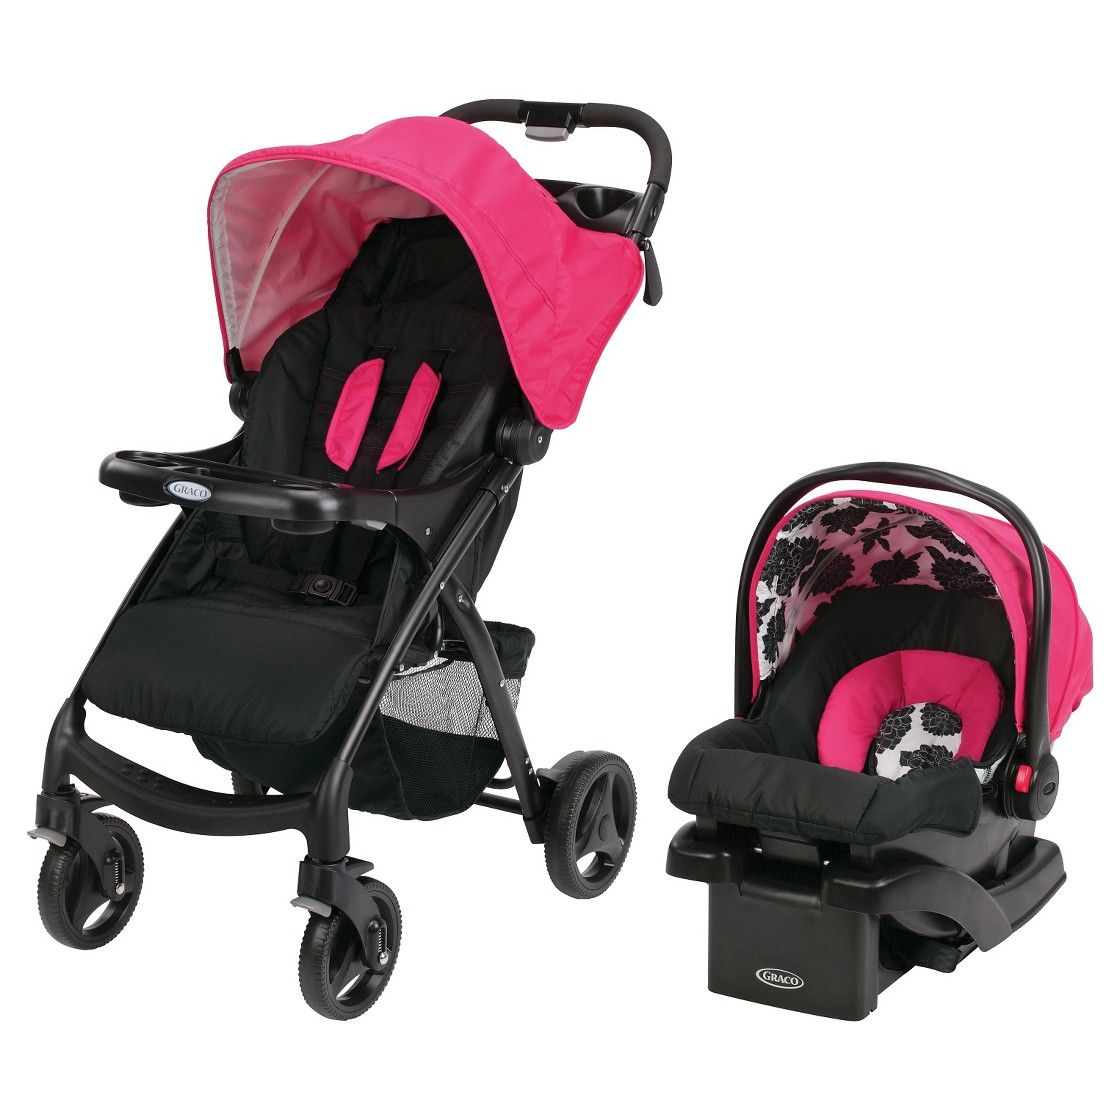 Graco Verb Click Connect Travel System ( at target